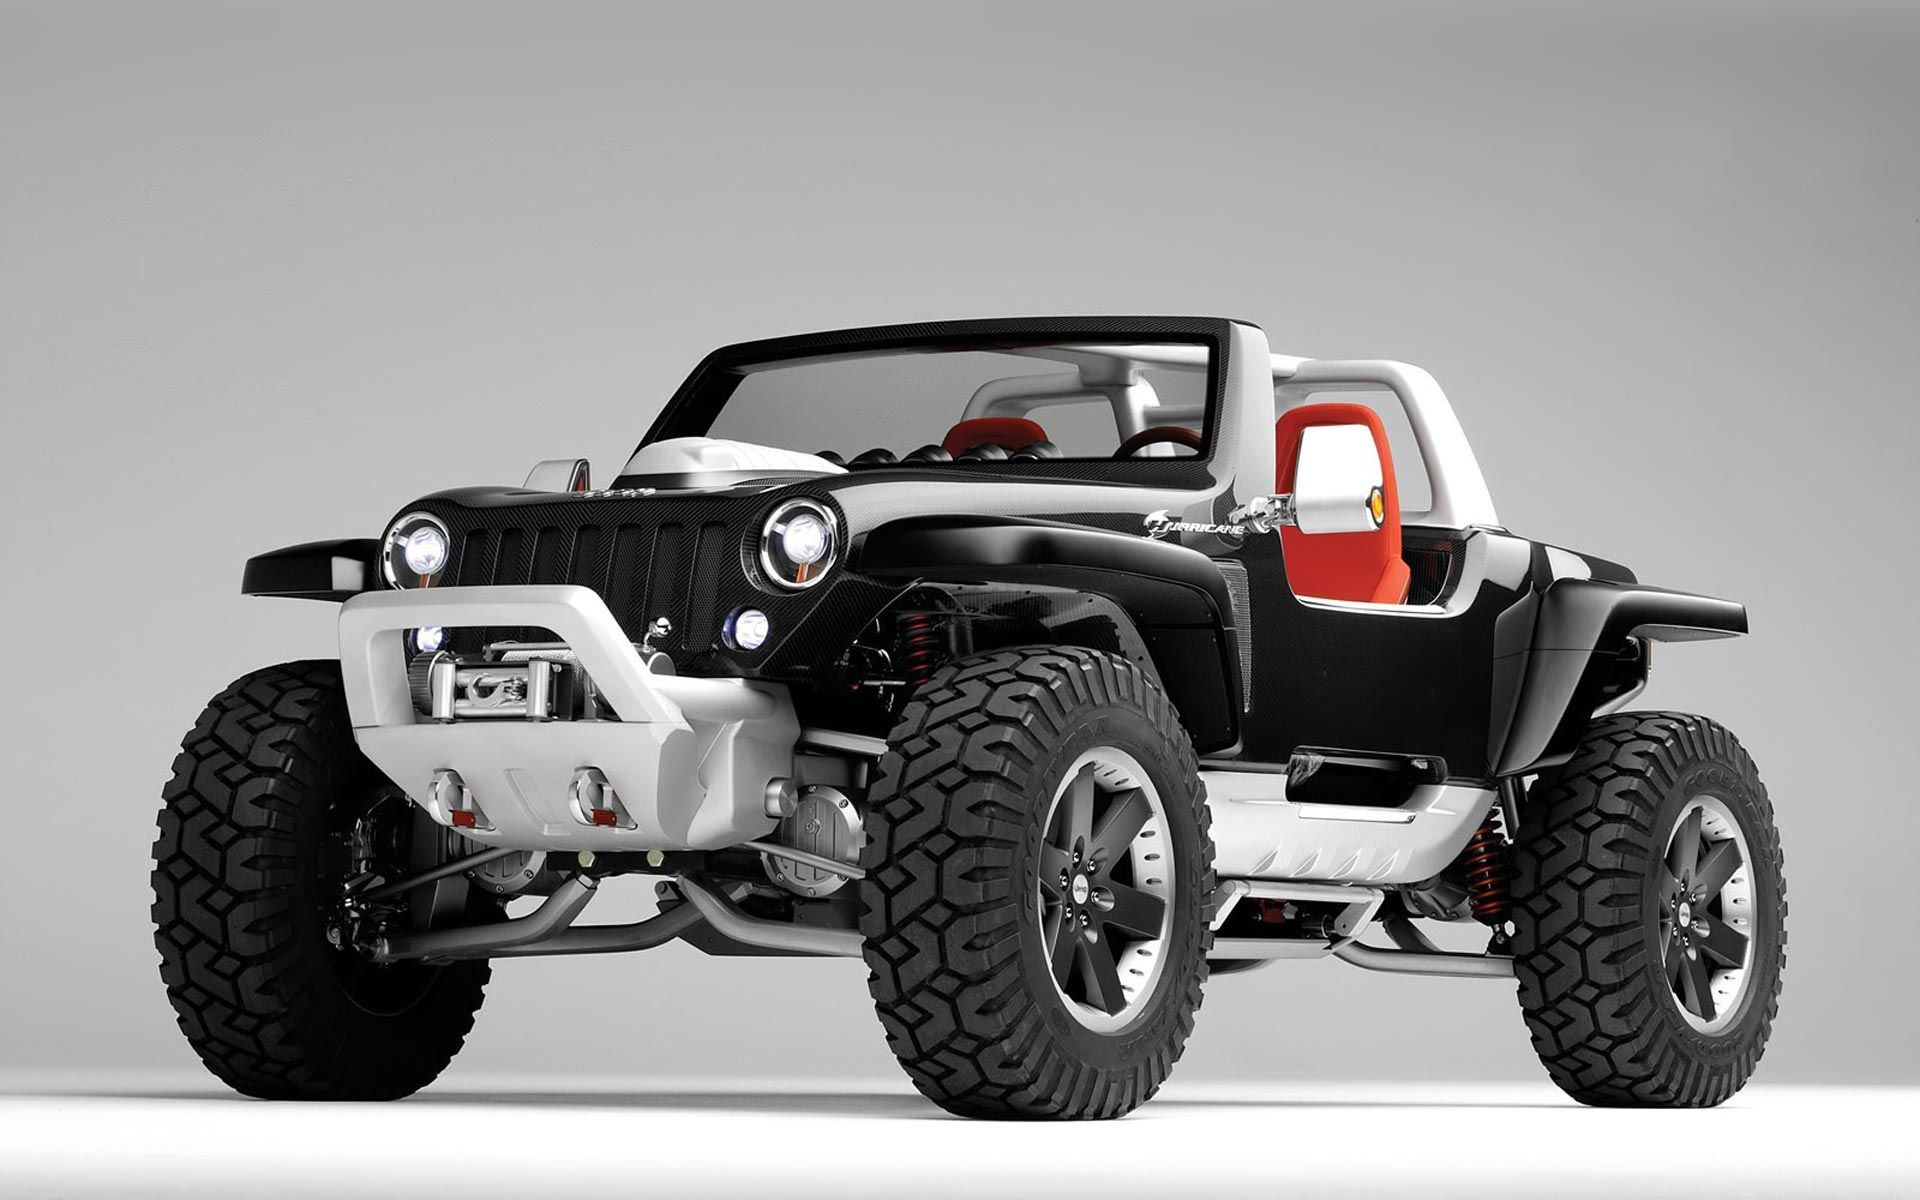 Merveilleux HD Wallpaper For Backgrounds Jeep Hurricane Concept 2005 Car Tuning Jeep  Hurricane Concept 2005 And ...